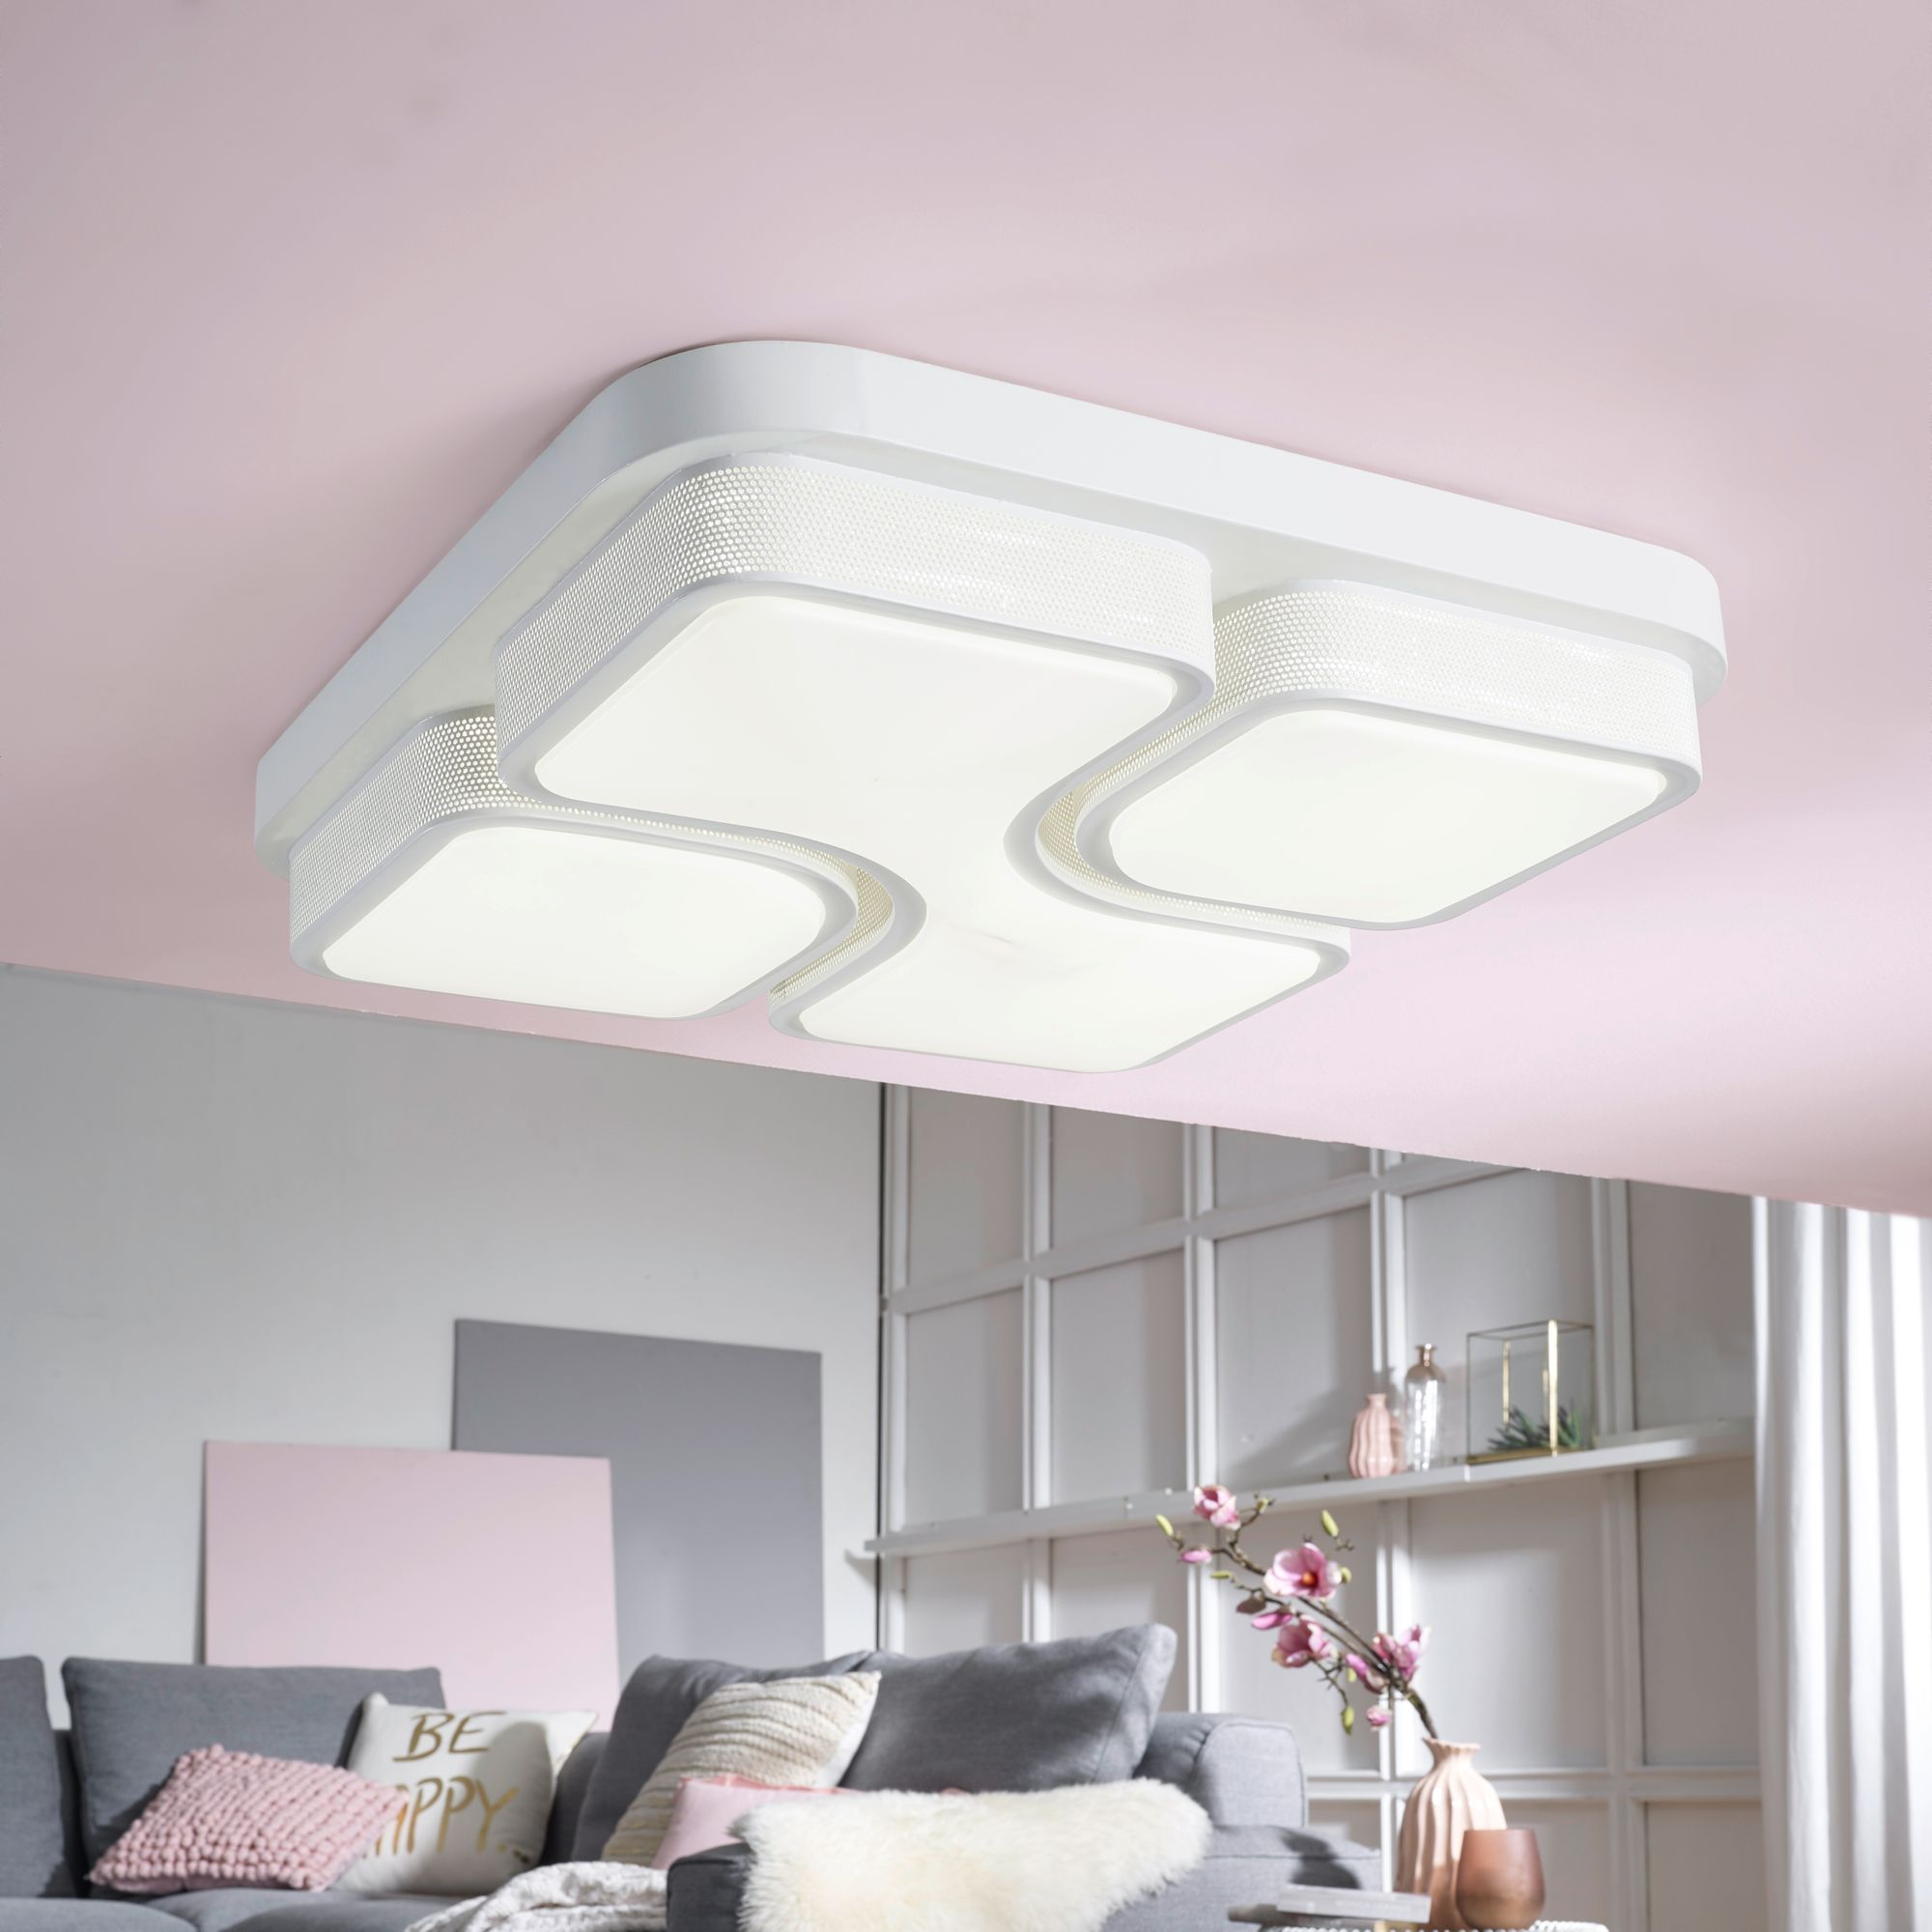 Full Size of Led Beleuchtung Wohnzimmer Ideen Led Leuchten Für Wohnzimmer Wohnzimmer Beleuchtung Led Leiste Led Beleuchtung Für Wohnzimmer Wohnzimmer Led Beleuchtung Wohnzimmer